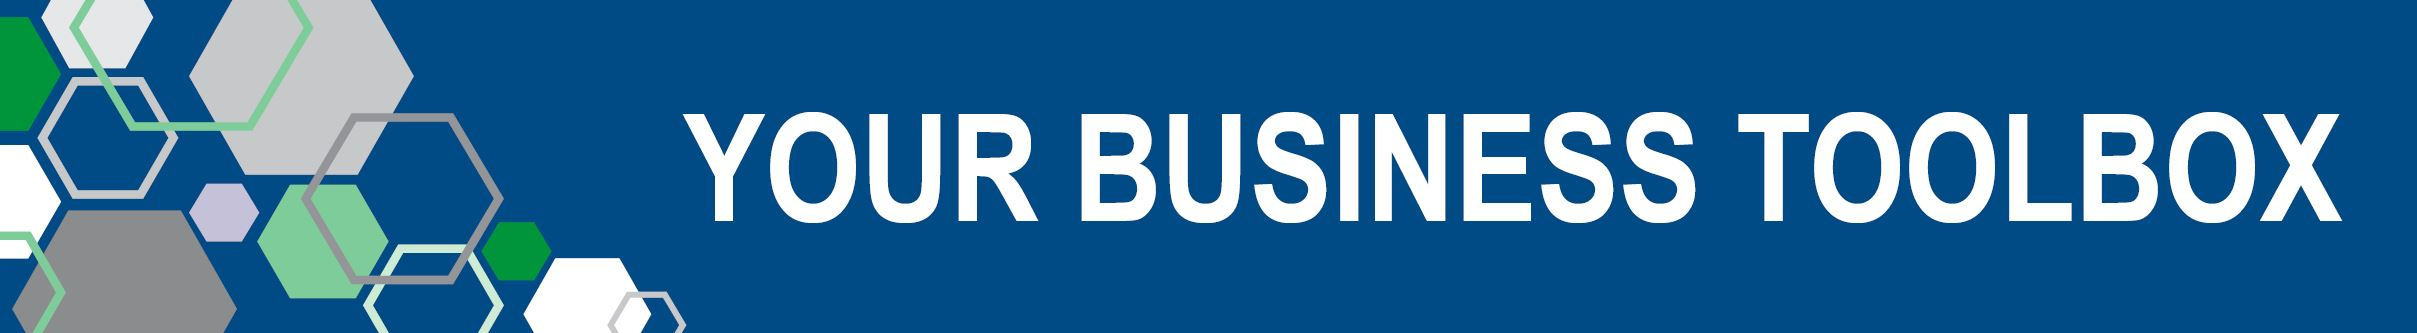 BizBytes - Business Toolbox